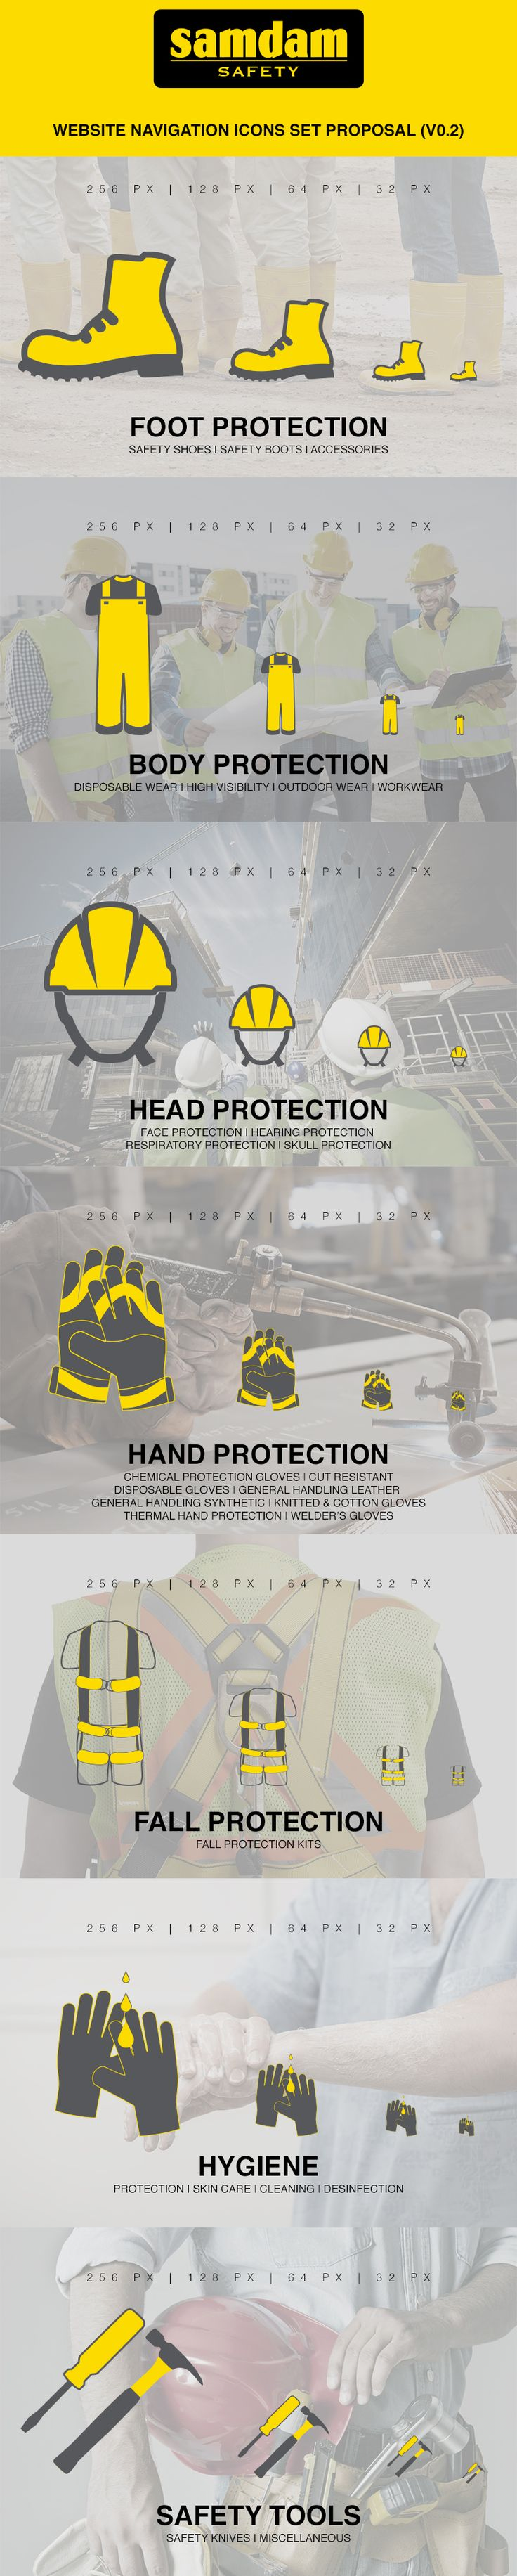 Website navigation Icons Set design & presentation for Samdam Safety